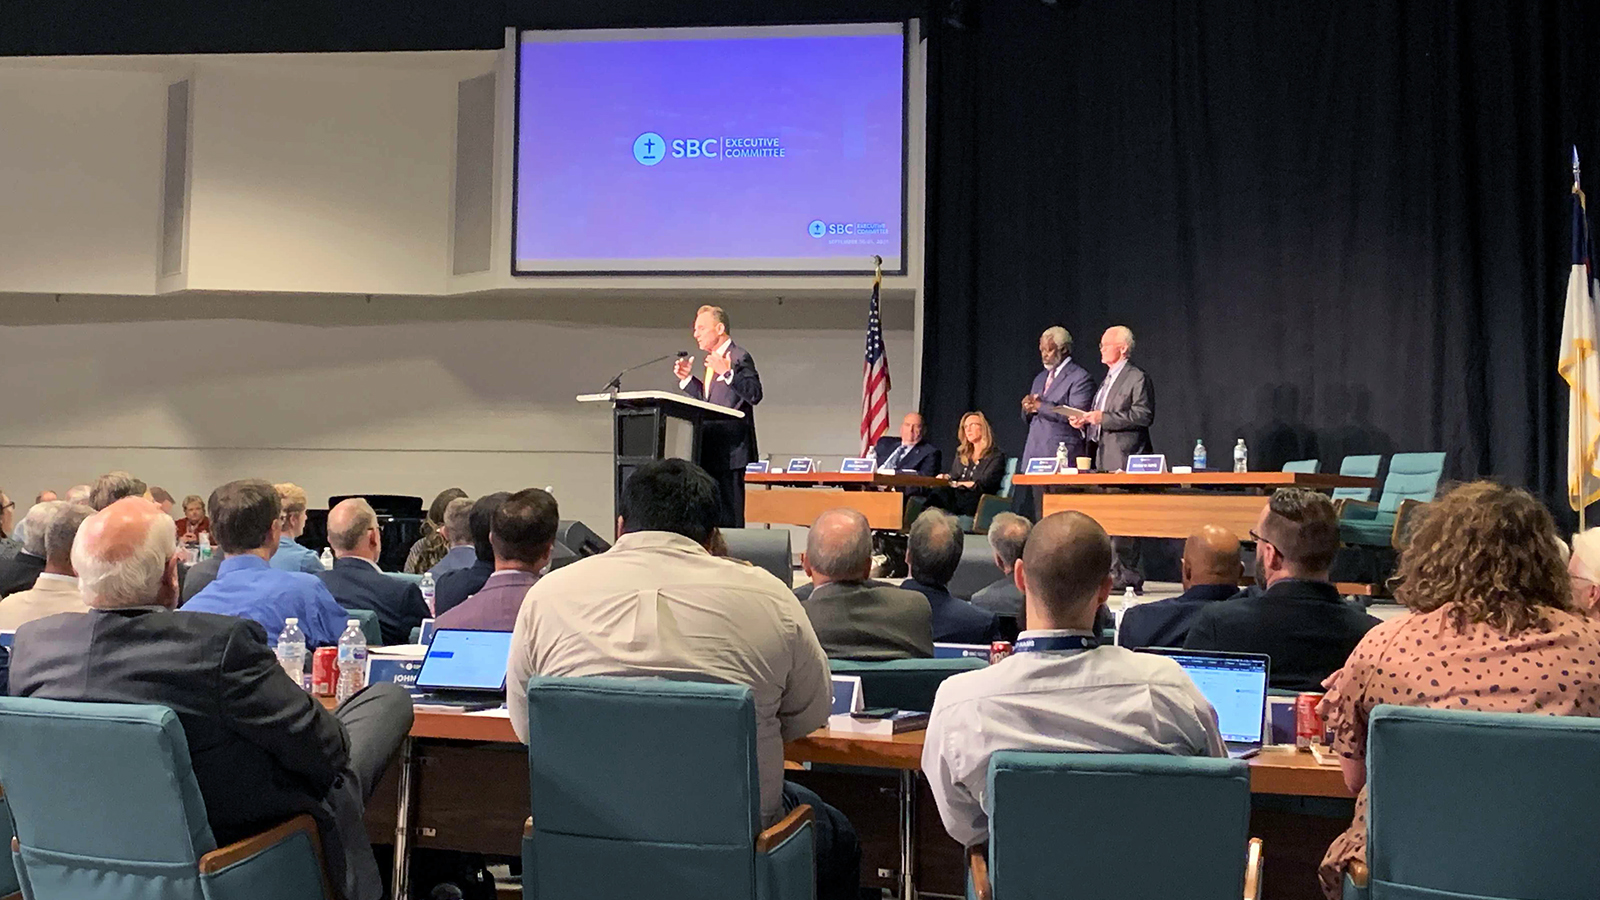 The Rev. Ronnie Floyd speaks during a meeting of the Southern Baptist Convention Executive Committee, Tuesday, Sept. 21, 2021, in Nashville. RNS photo by Bob Smietana